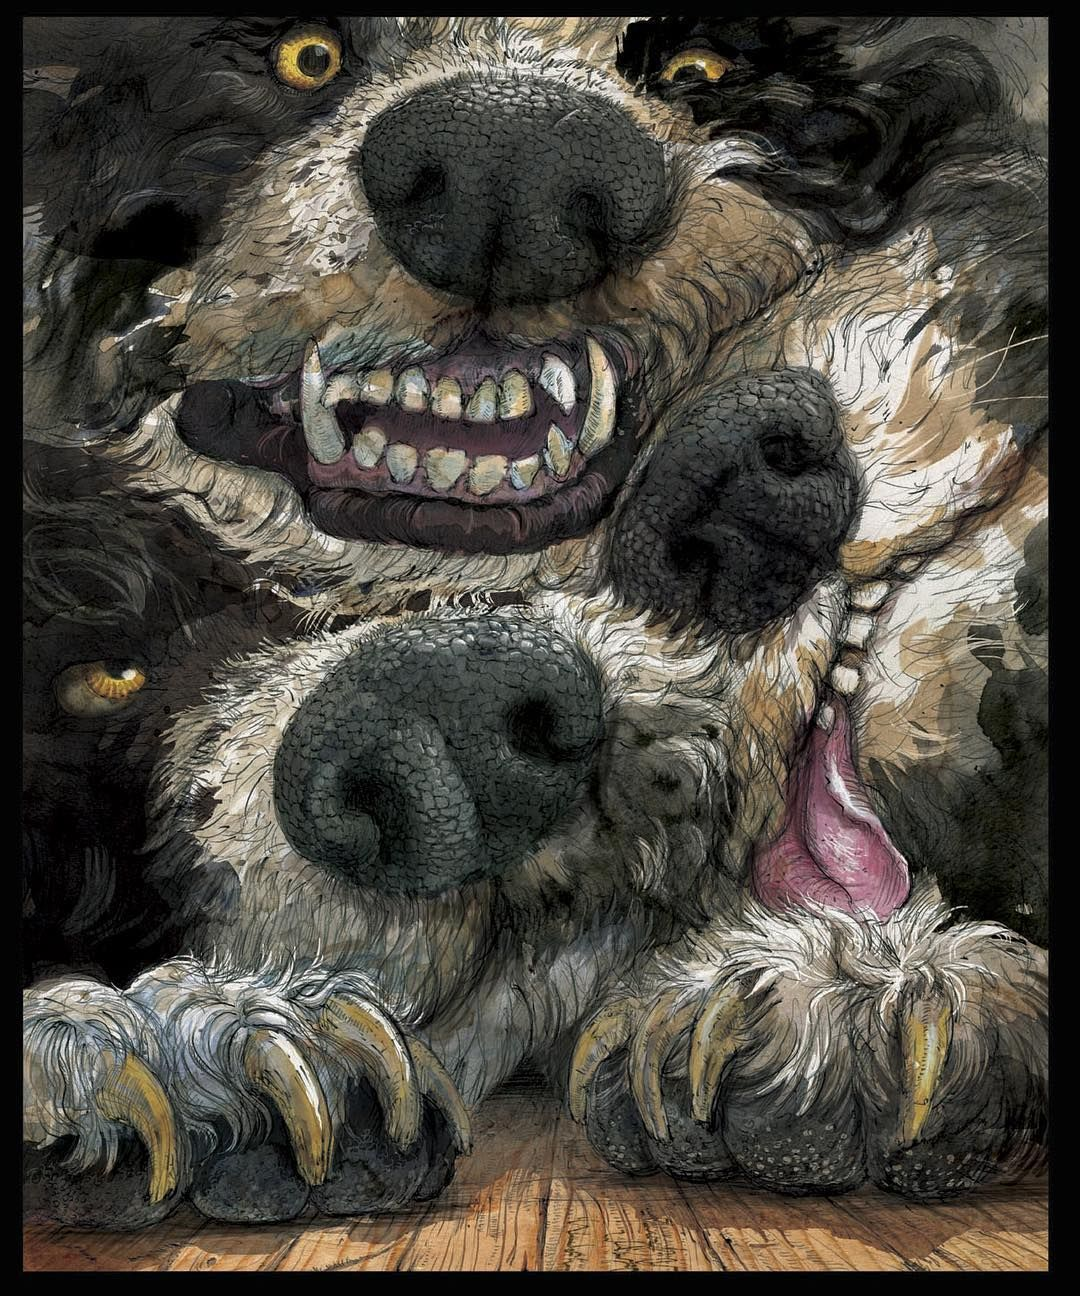 Fluffy The Three Headed Monster From The Philosopher S Stone Fanart Harry Potter Illustration Magie